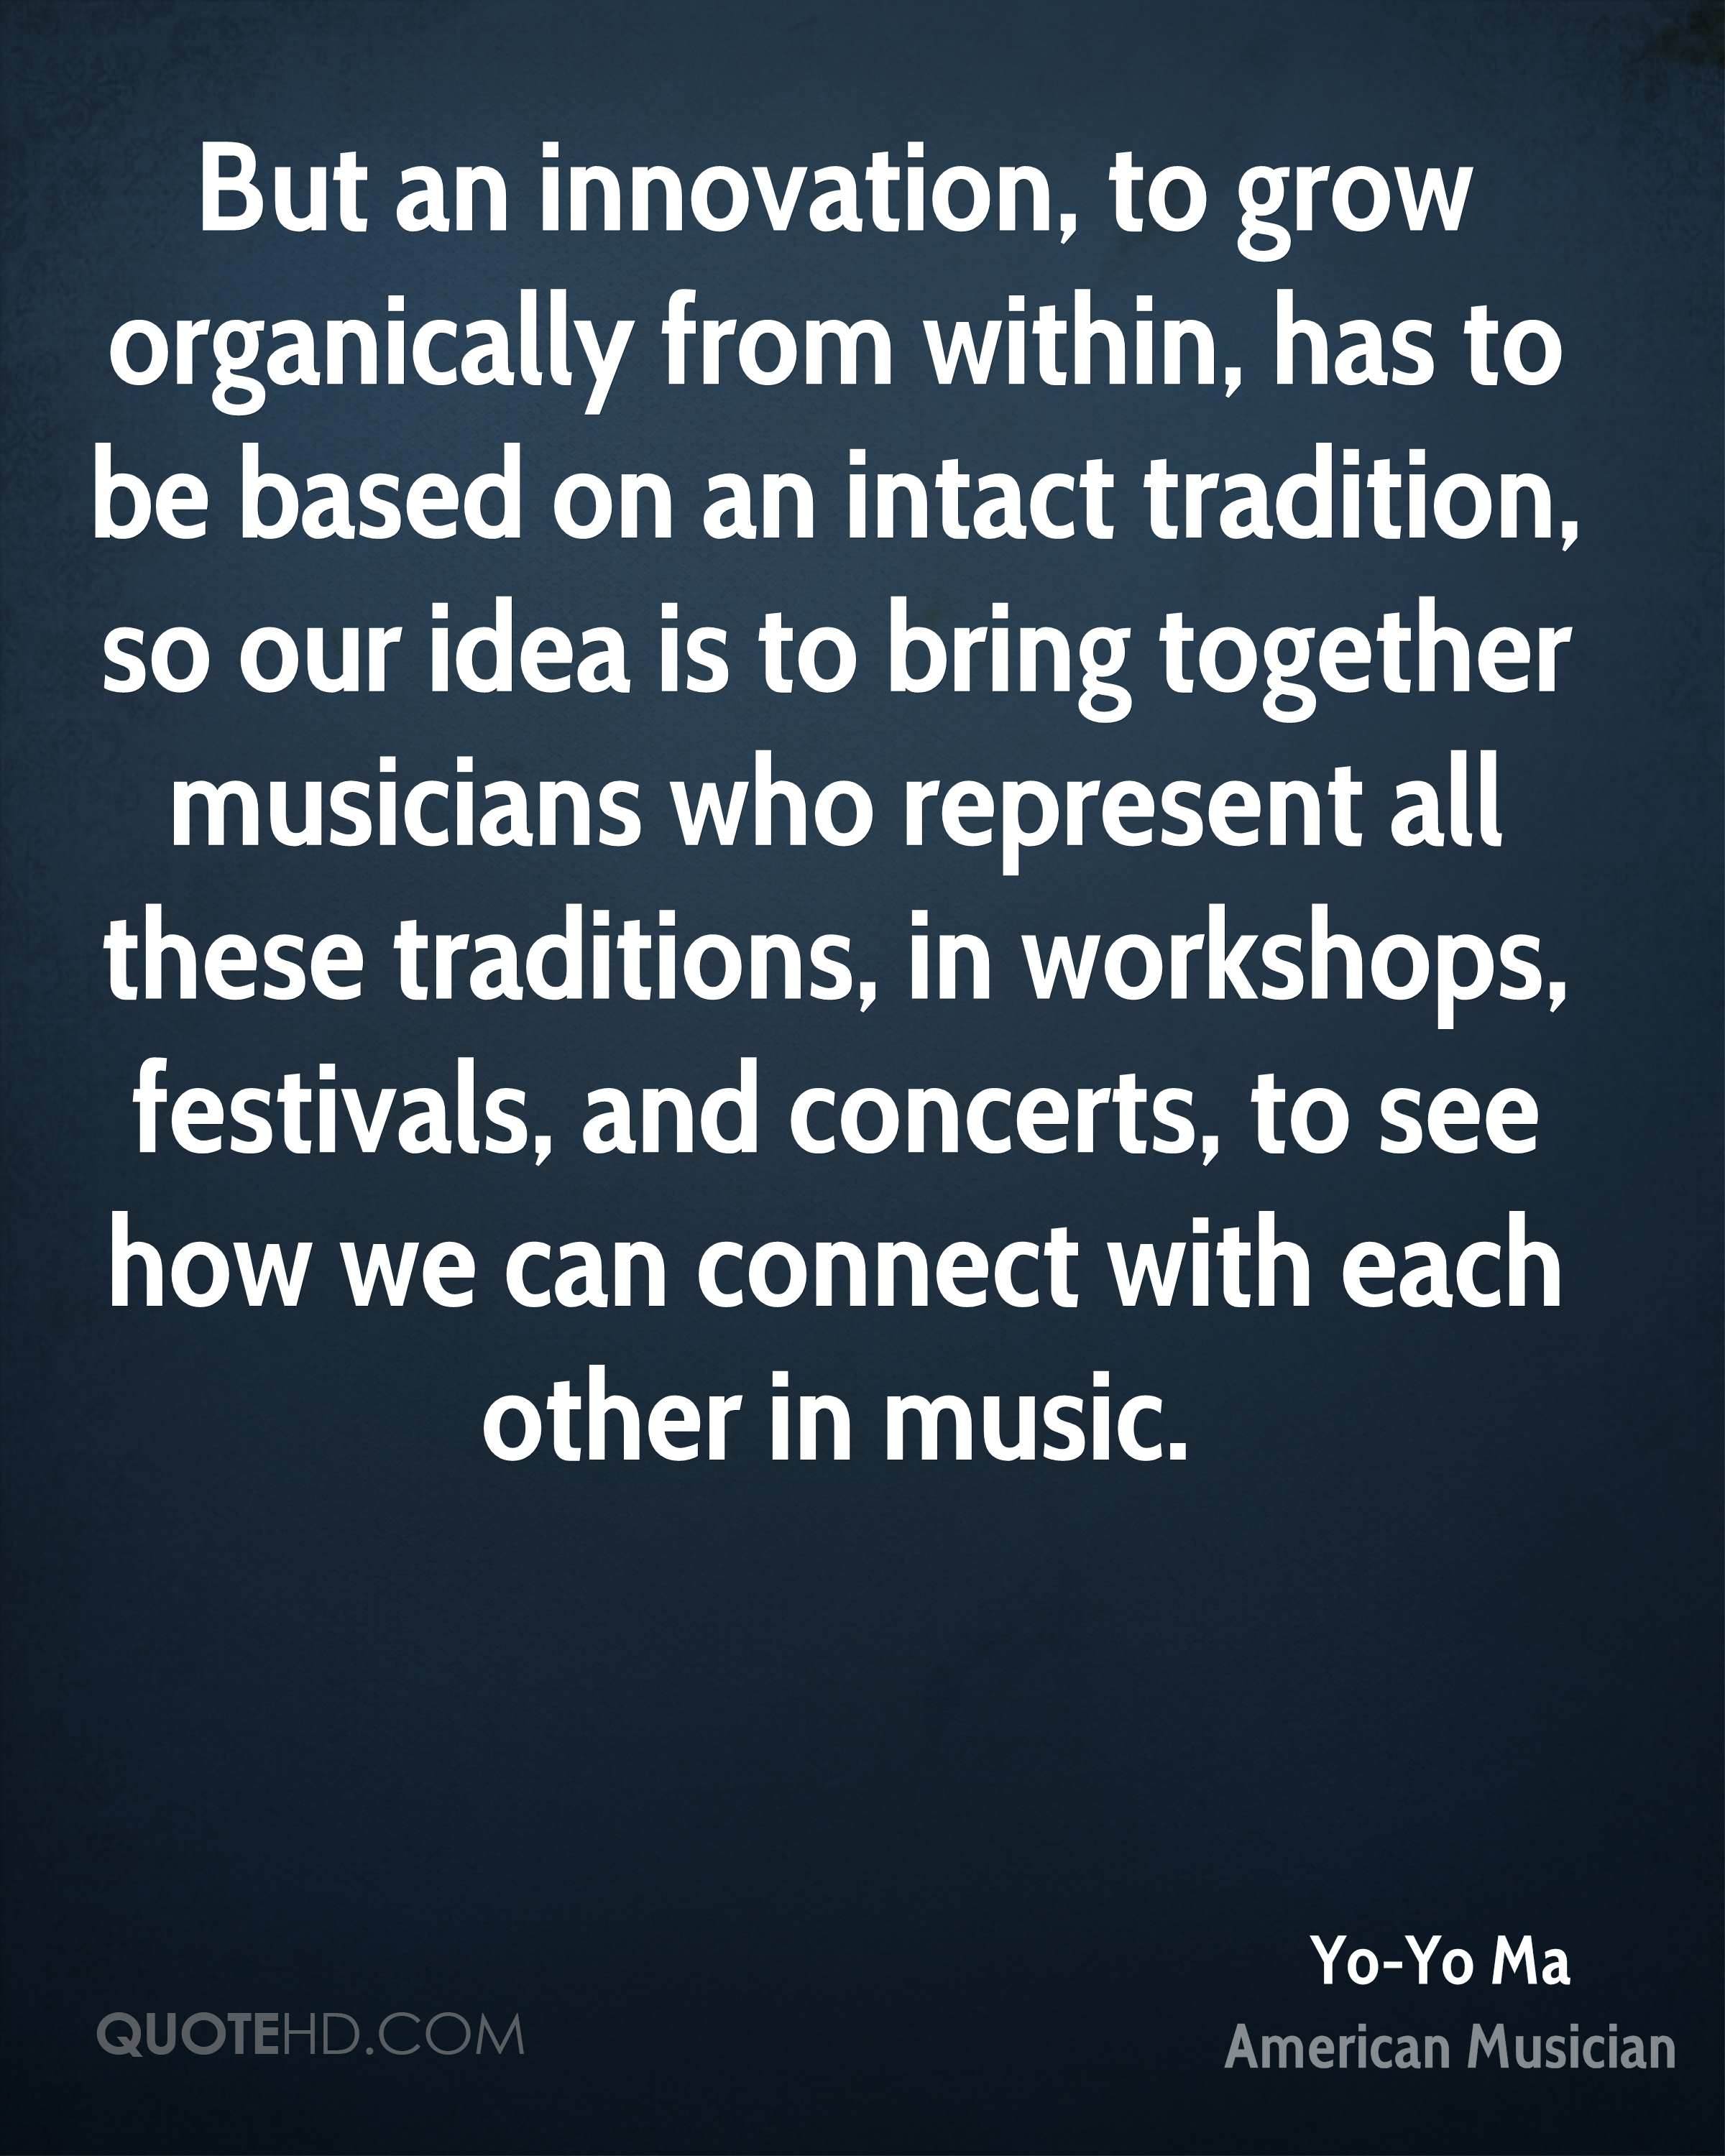 But an innovation, to grow organically from within, has to be based on an intact tradition, so our idea is to bring together musicians who represent all these traditions, in workshops, festivals, and concerts, to see how we can connect with each other in music.